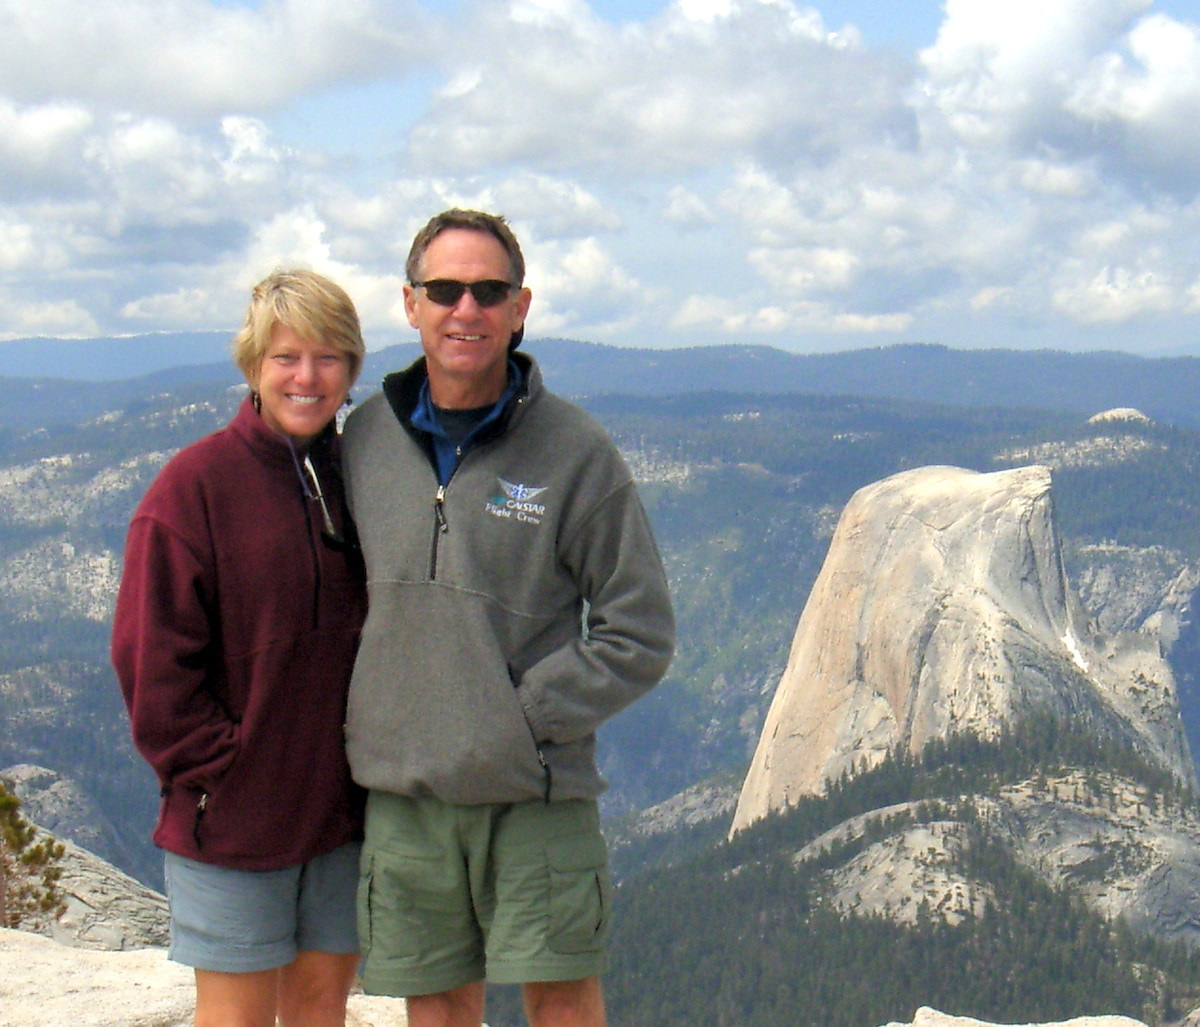 Suzi & Jack From Truckee, CA